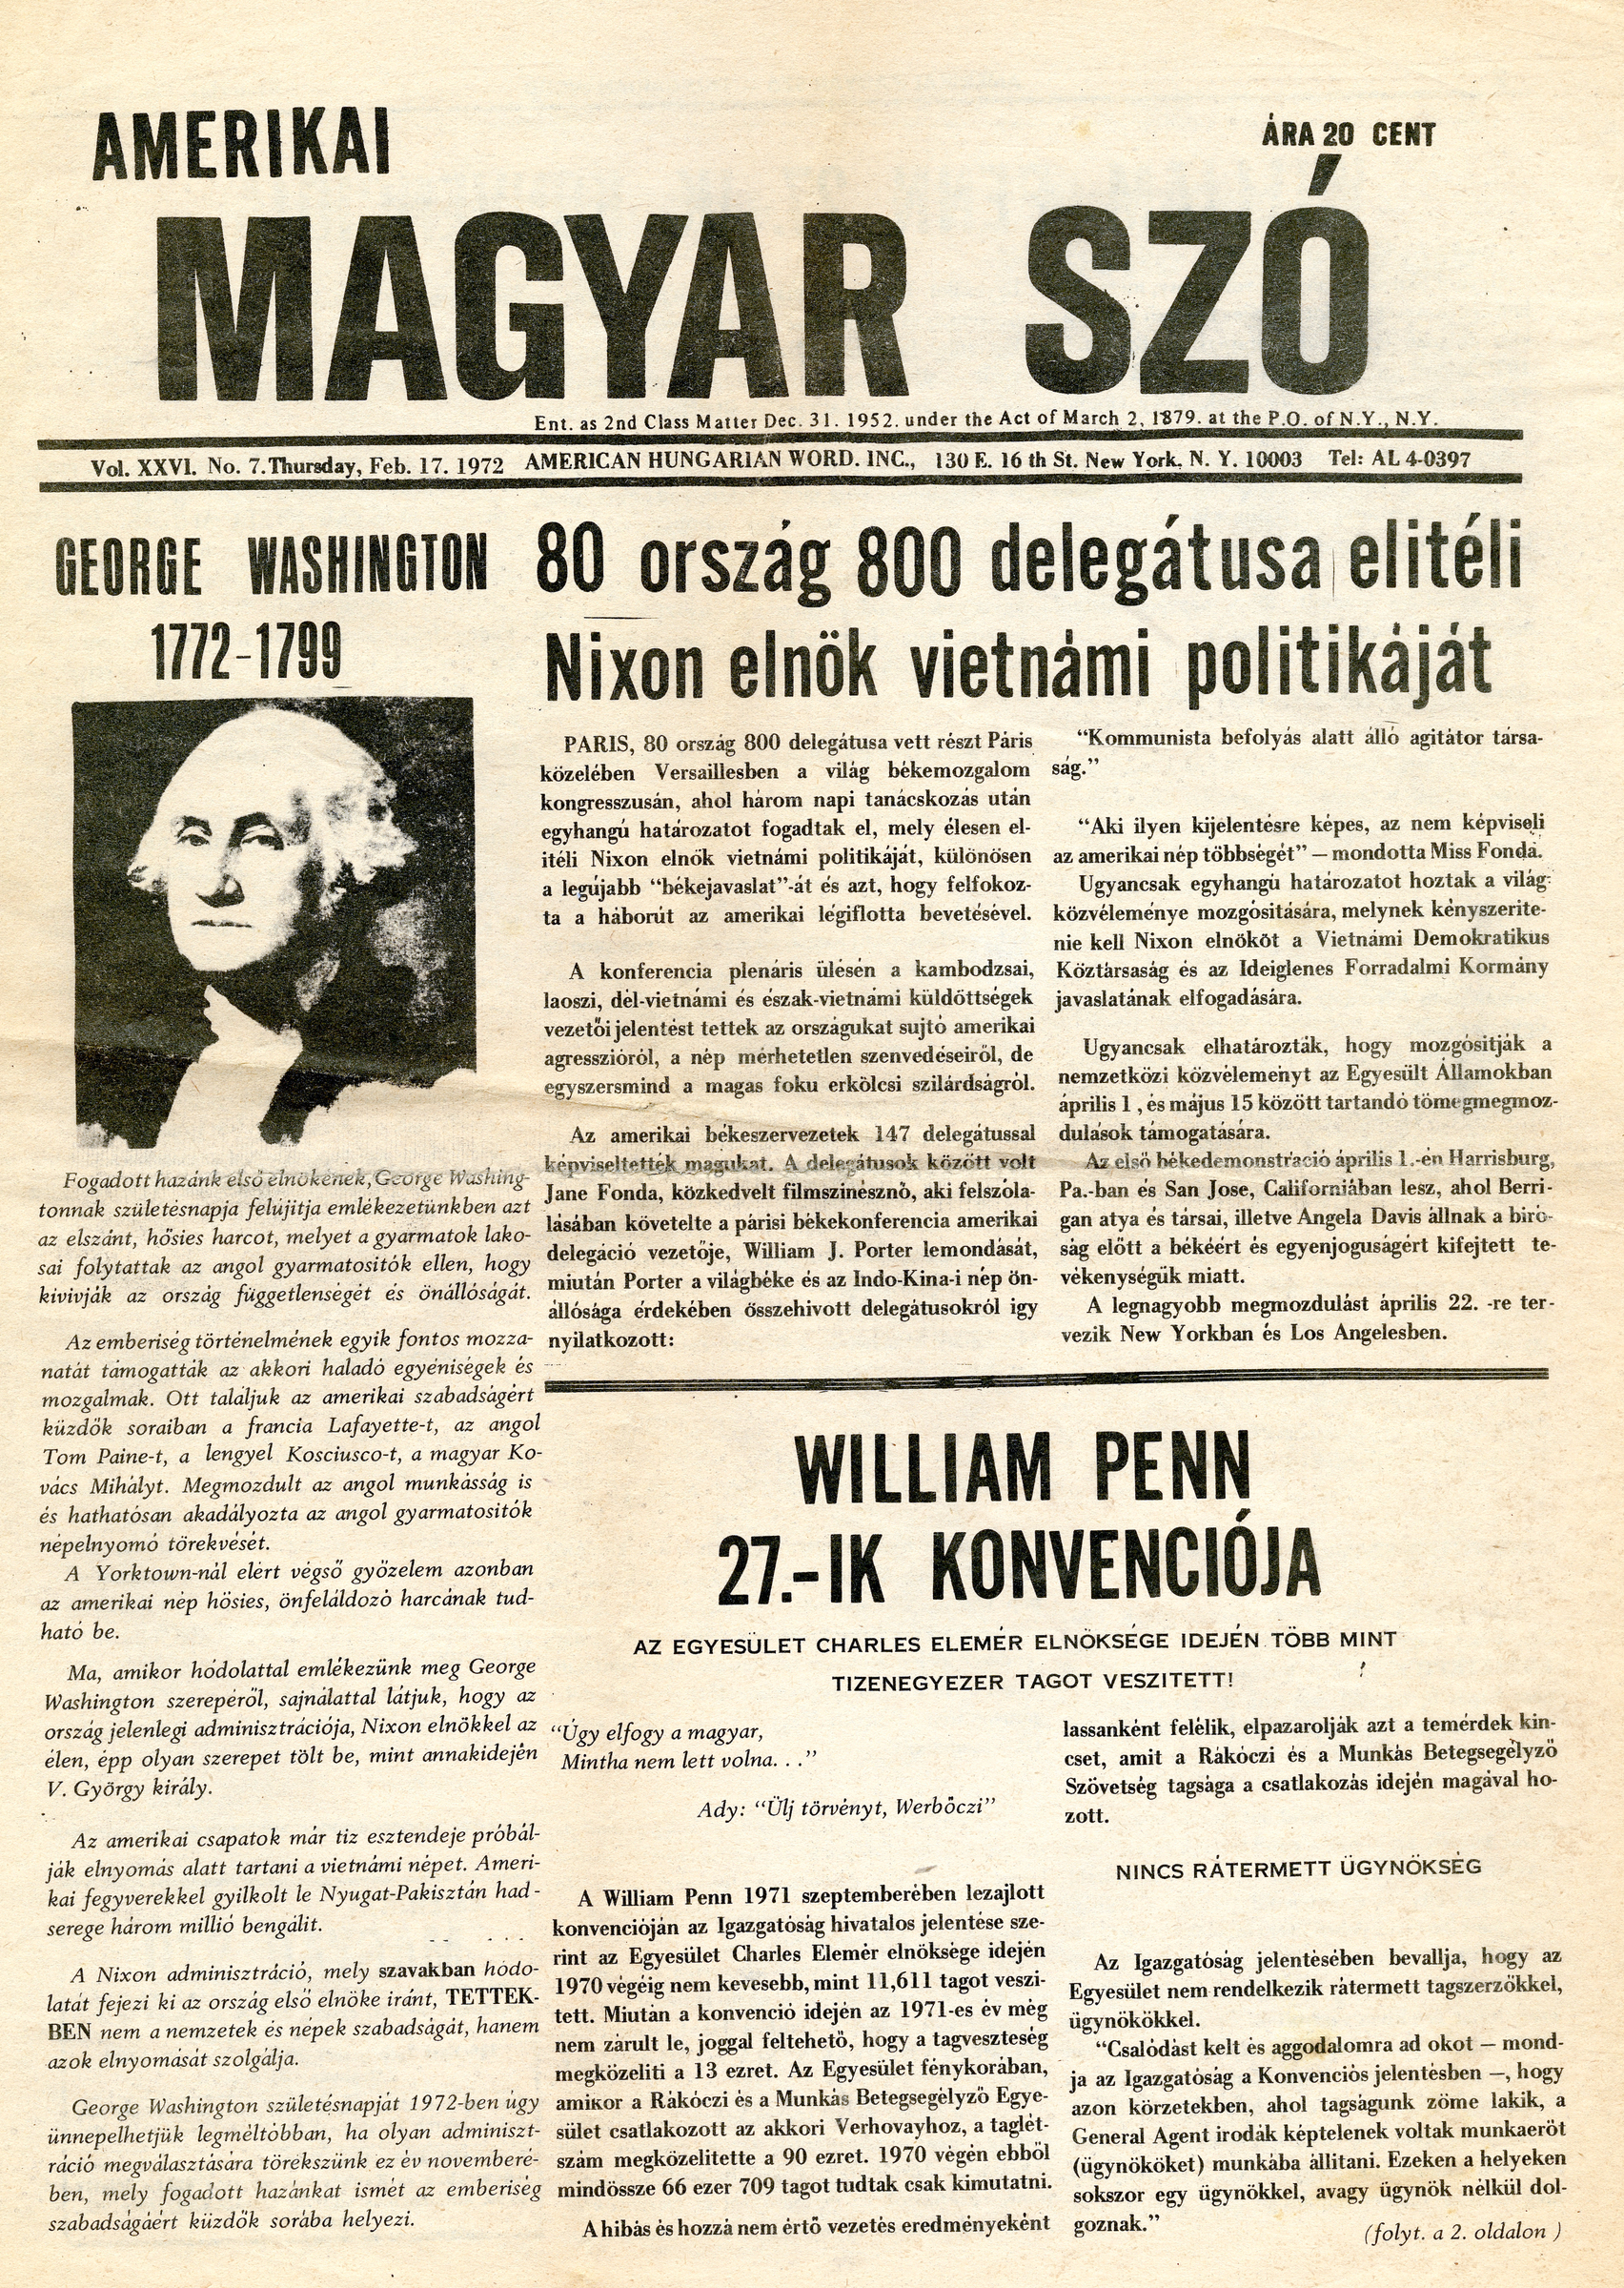 http://files.hungarianarchives.org/hungarianarchives/HUNGARIAN PAPERS/AHL_AMSZO/AHL_CONTR_Papers_MSzo_001.jpg